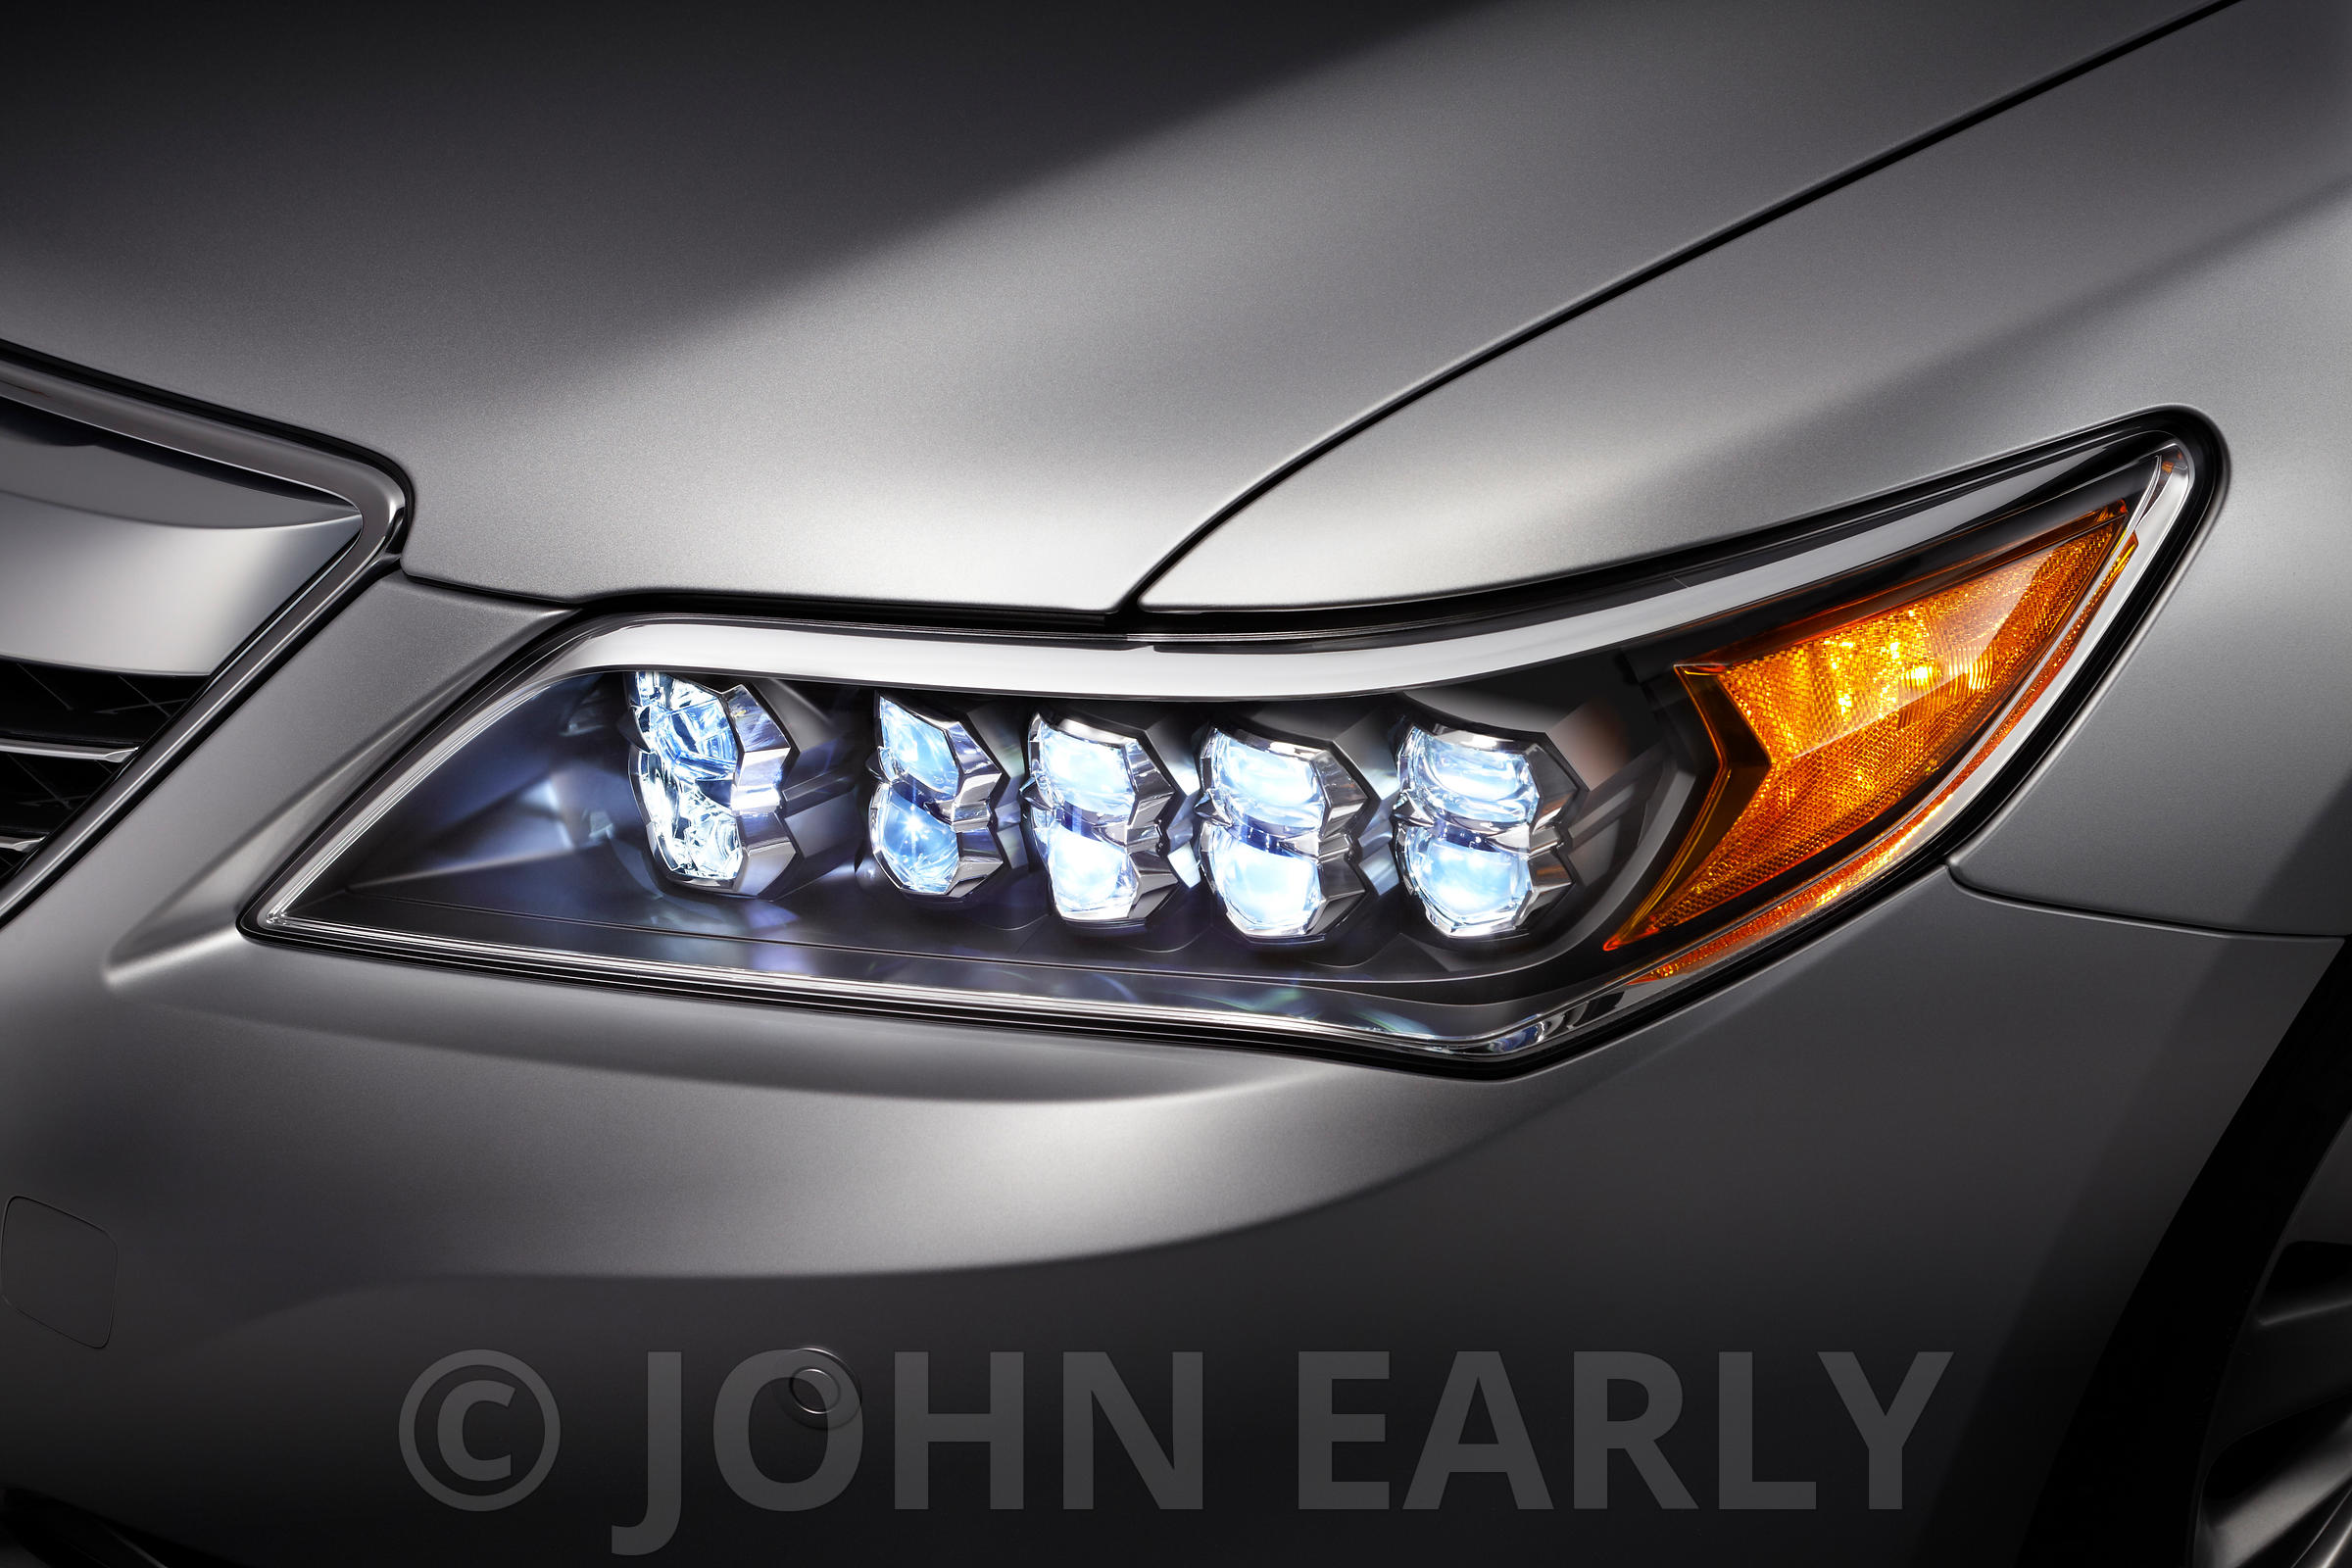 Detail View of Multi-LED Headlight on A Silver Car